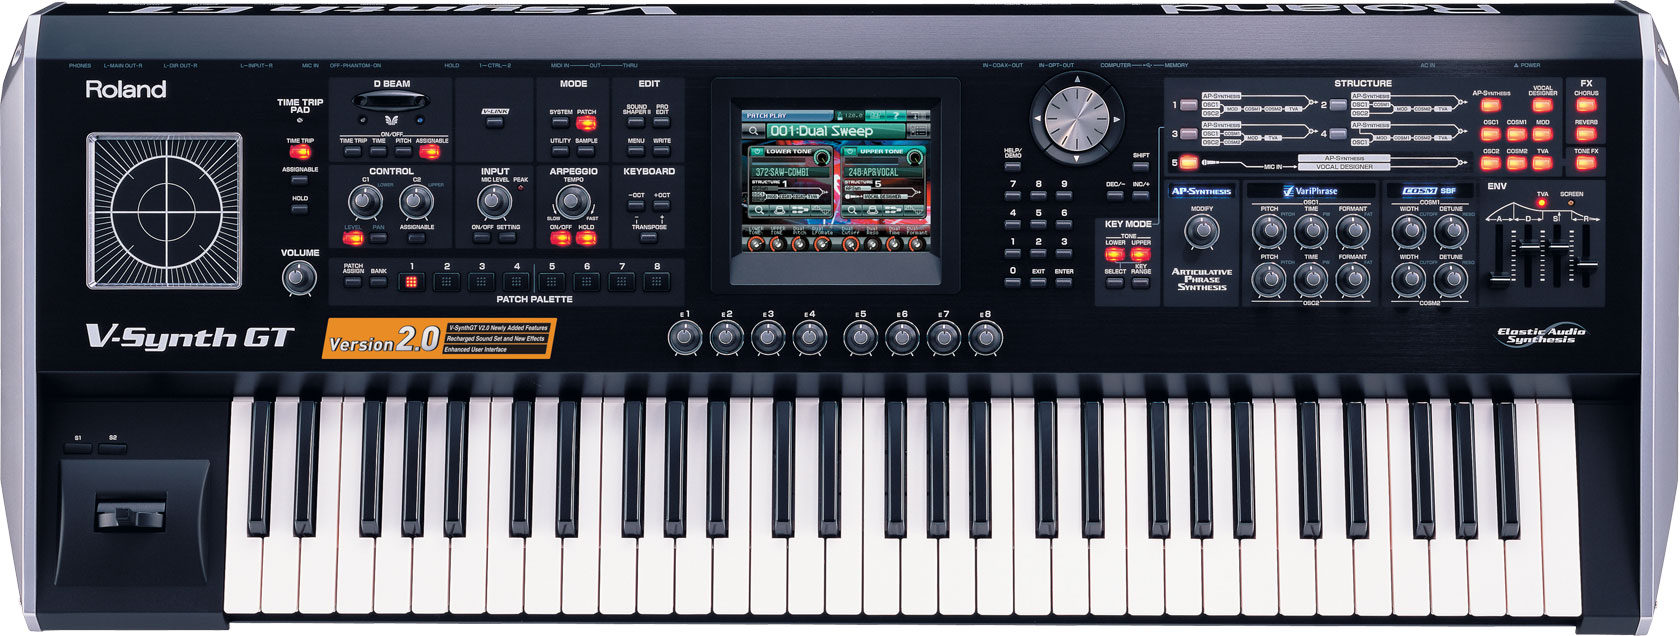 roland v synth gt elastic audio synthesizer. Black Bedroom Furniture Sets. Home Design Ideas